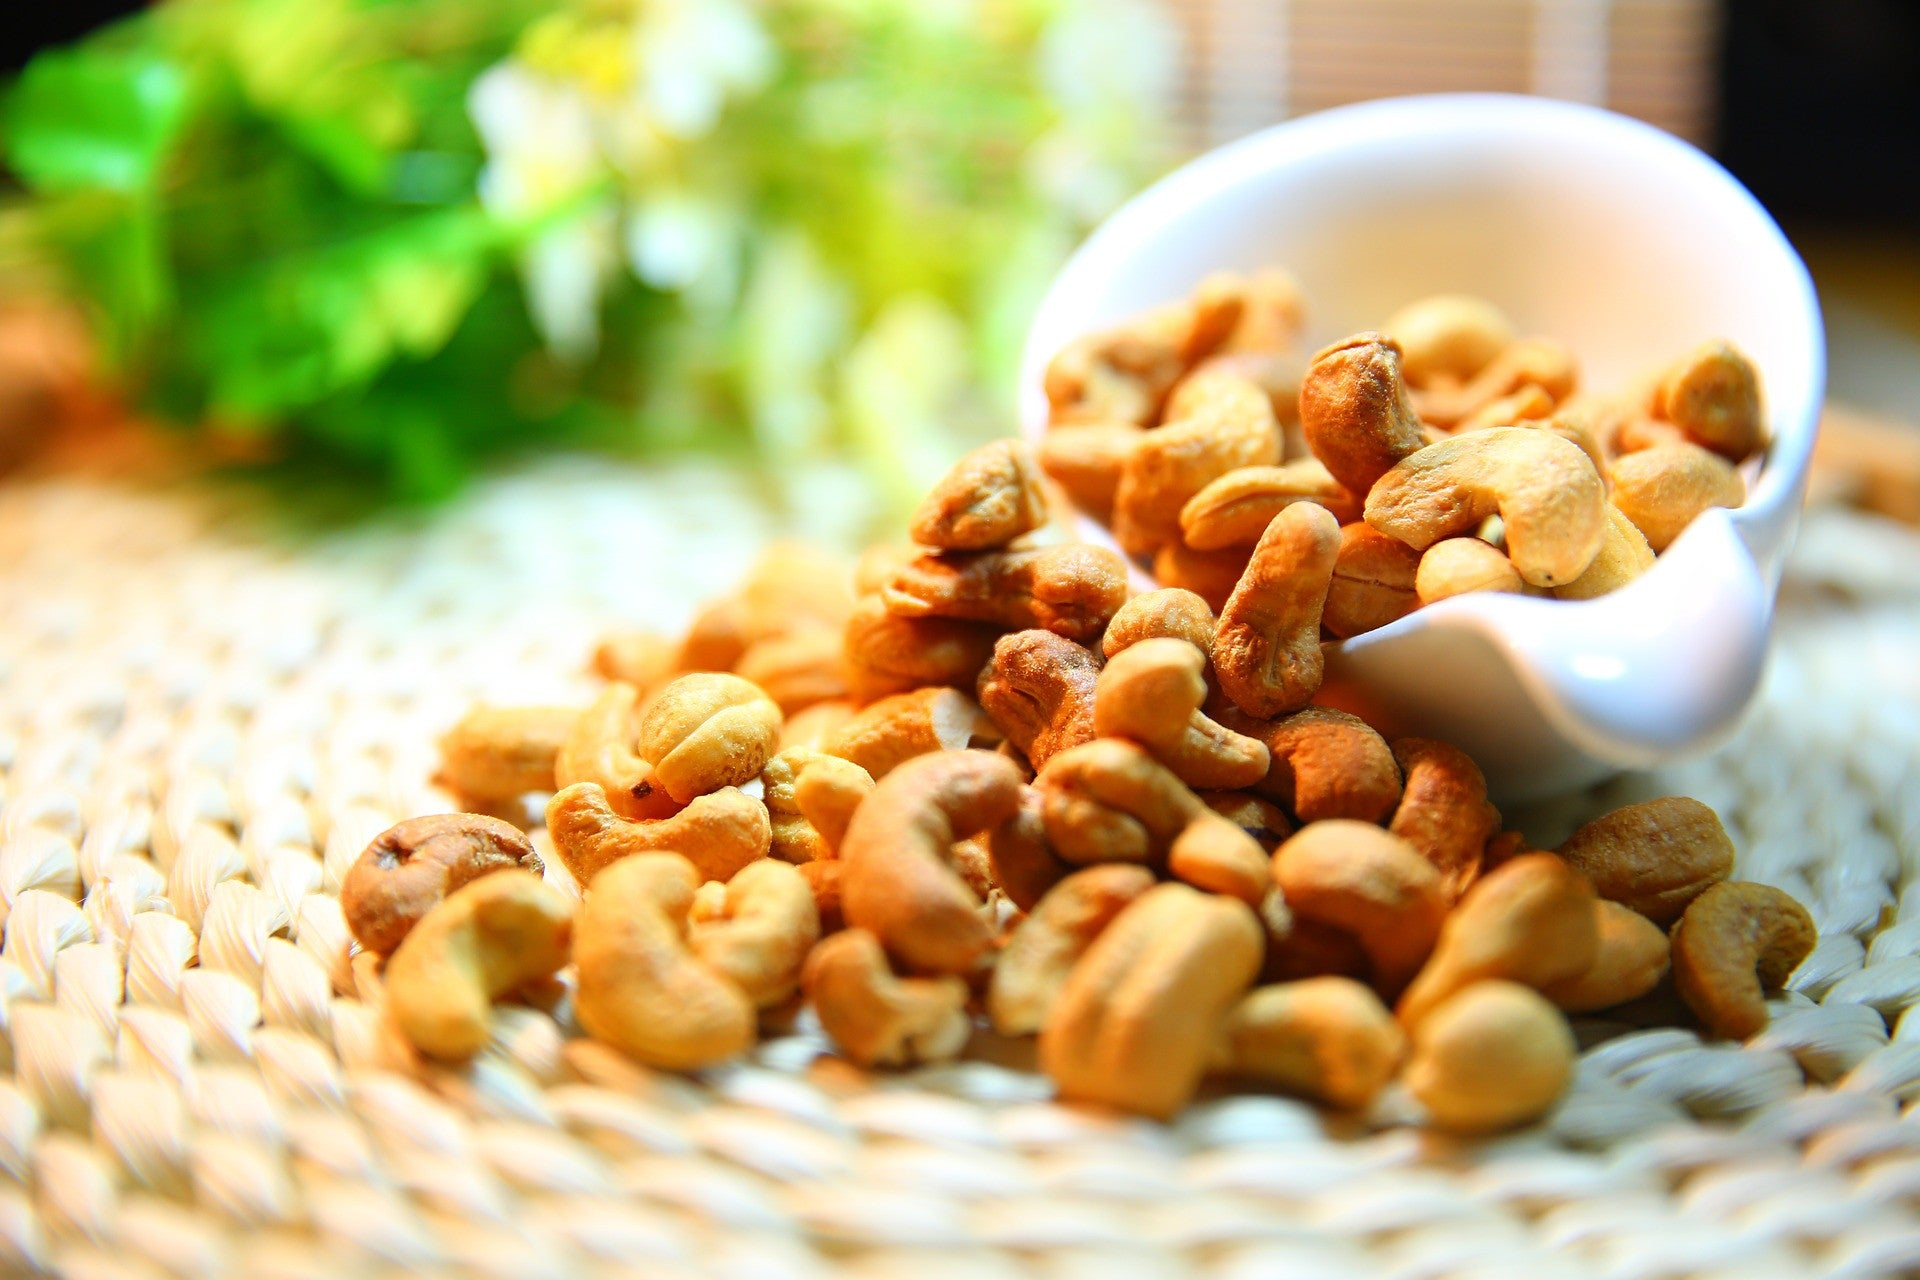 Are you sure eating nuts can help to lose weight?!